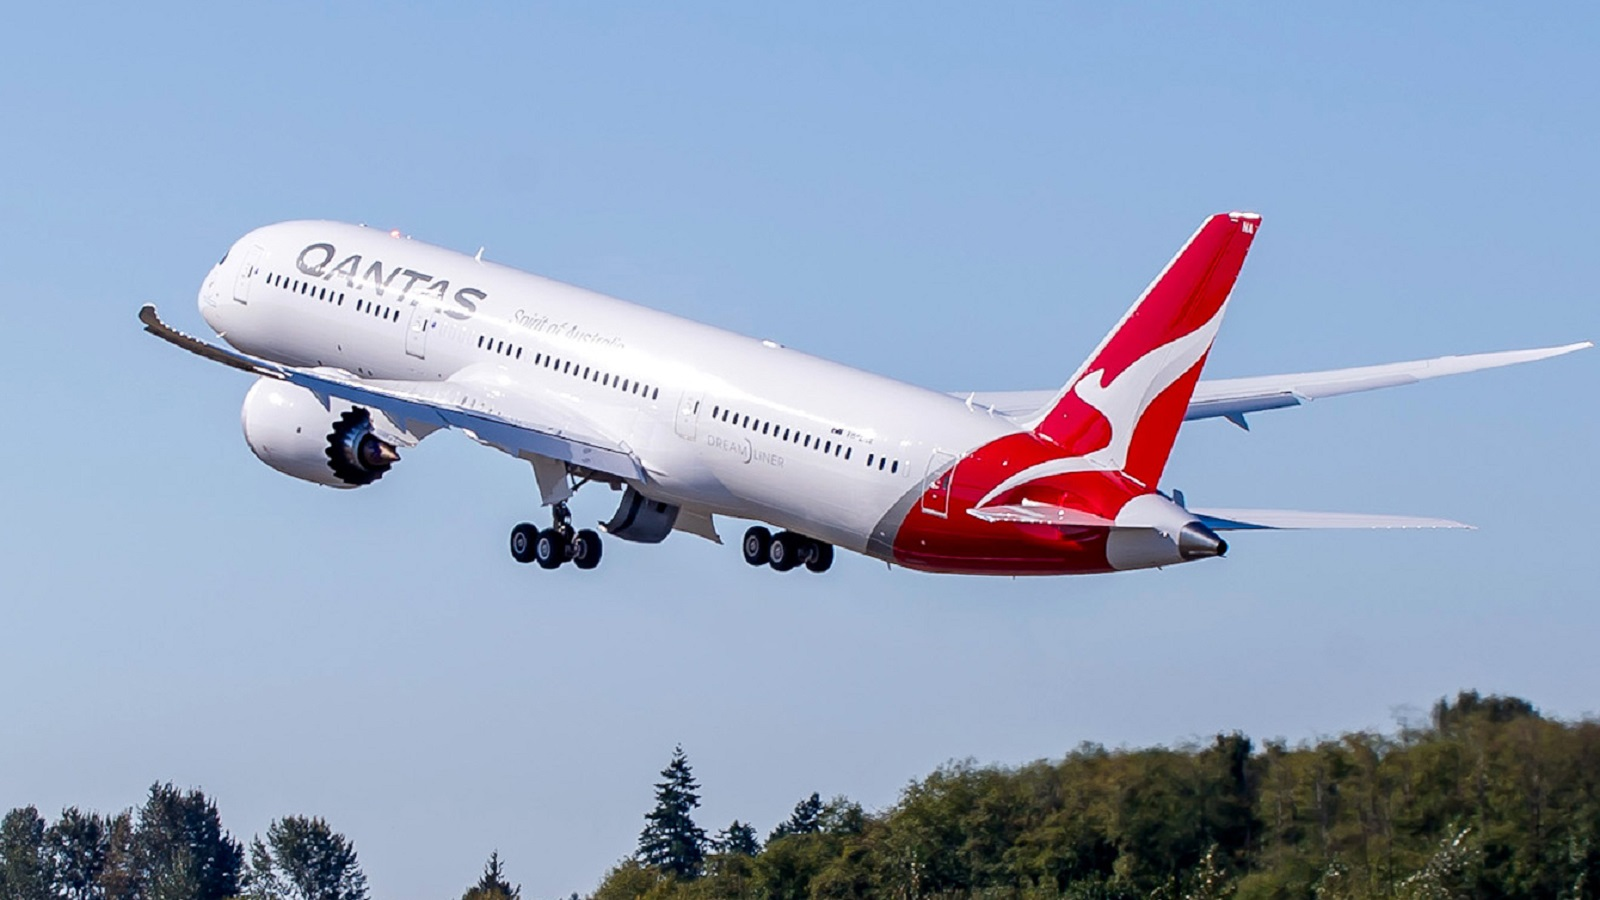 Qantas amazing safety record airline ratings qantas has a remarkable safety record stopboris